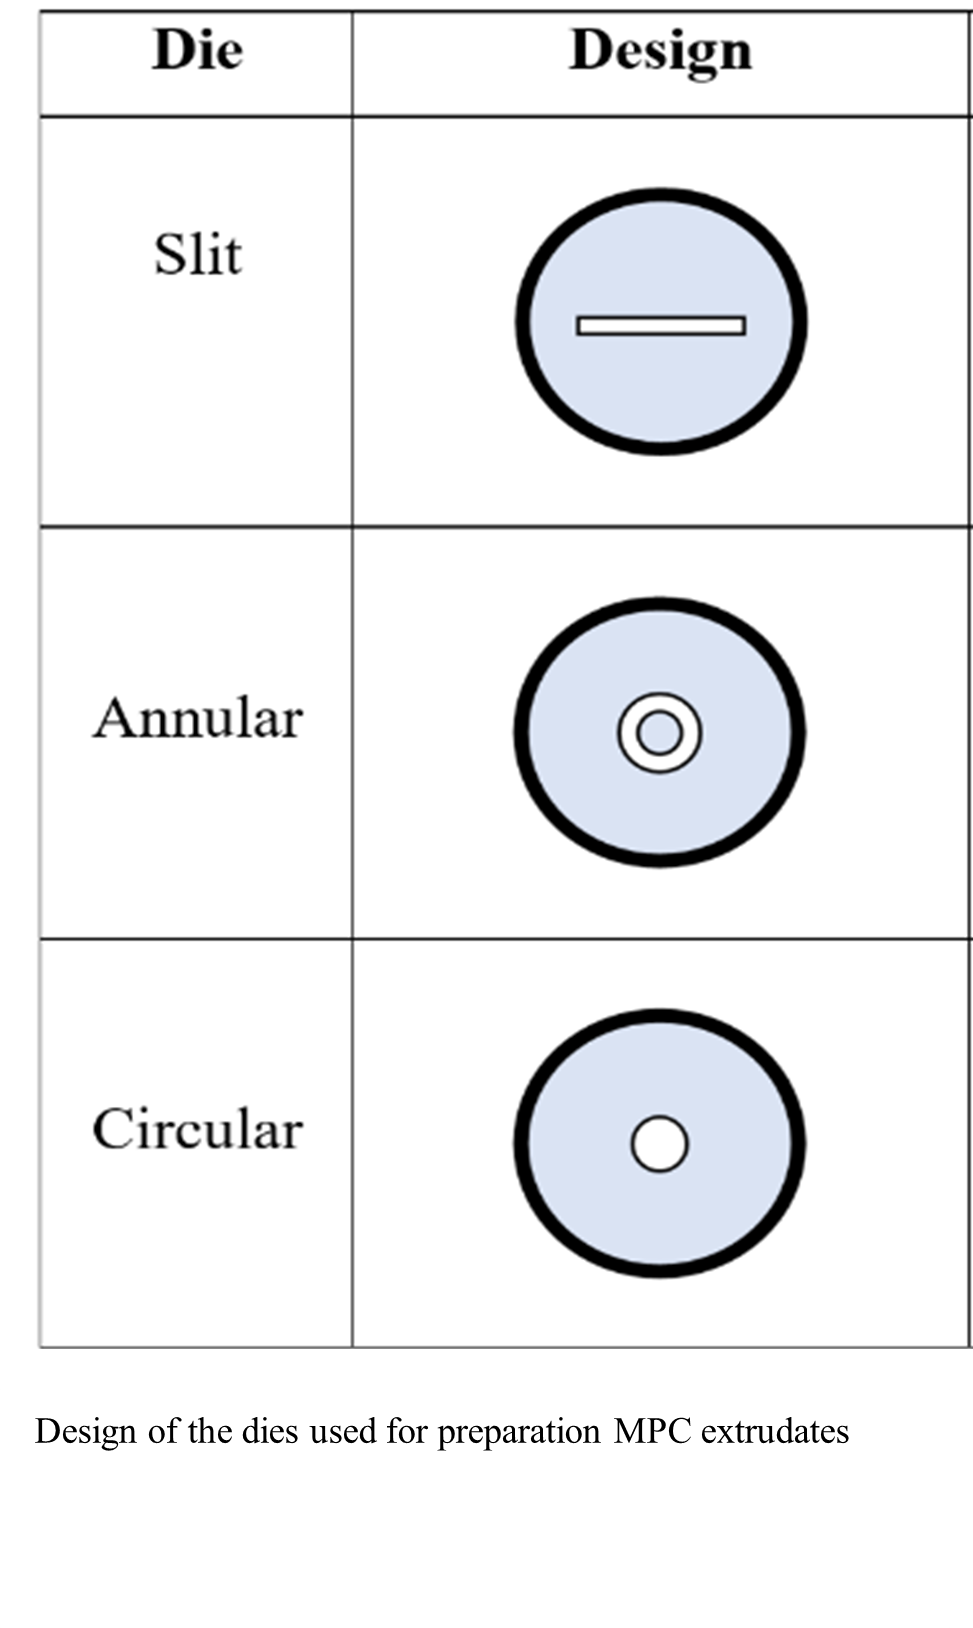 Chart showing designs for slit, annular, and circular shapes